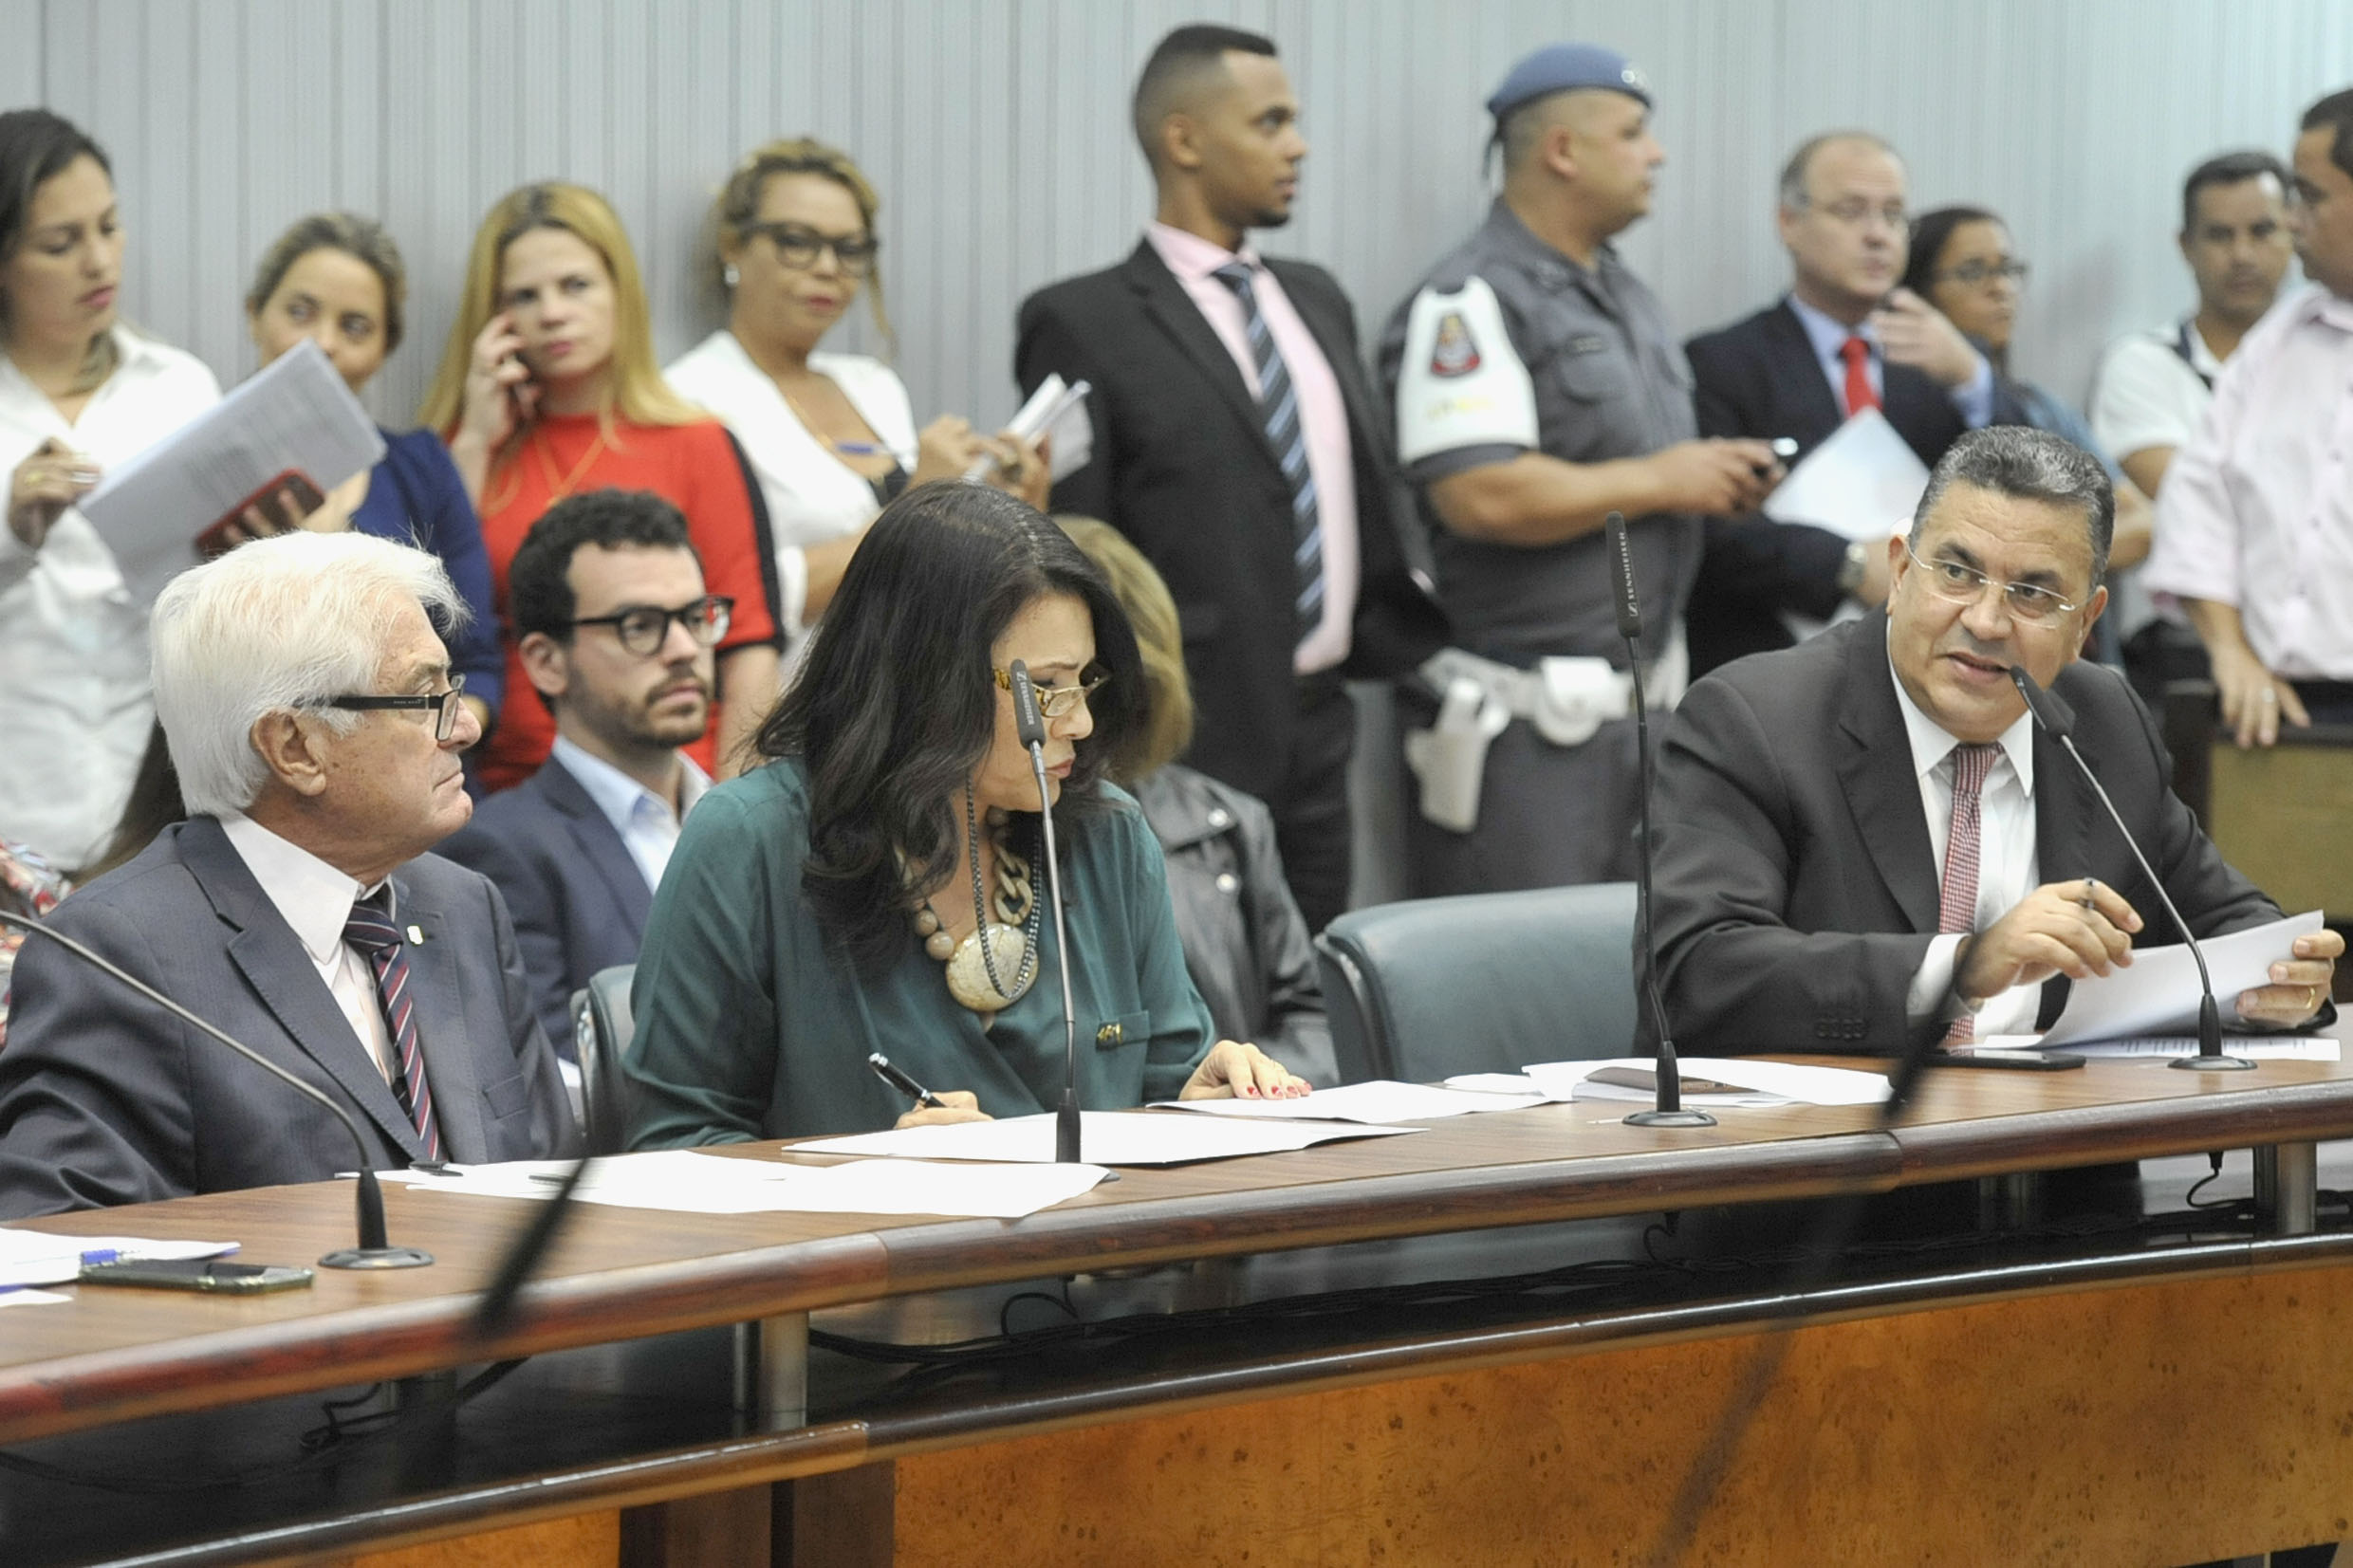 Parlamentares na comissão<a style='float:right' href='https://www3.al.sp.gov.br/repositorio/noticia/N-04-2019/fg233418.jpg' target=_blank><img src='/_img/material-file-download-white.png' width='14px' alt='Clique para baixar a imagem'></a>